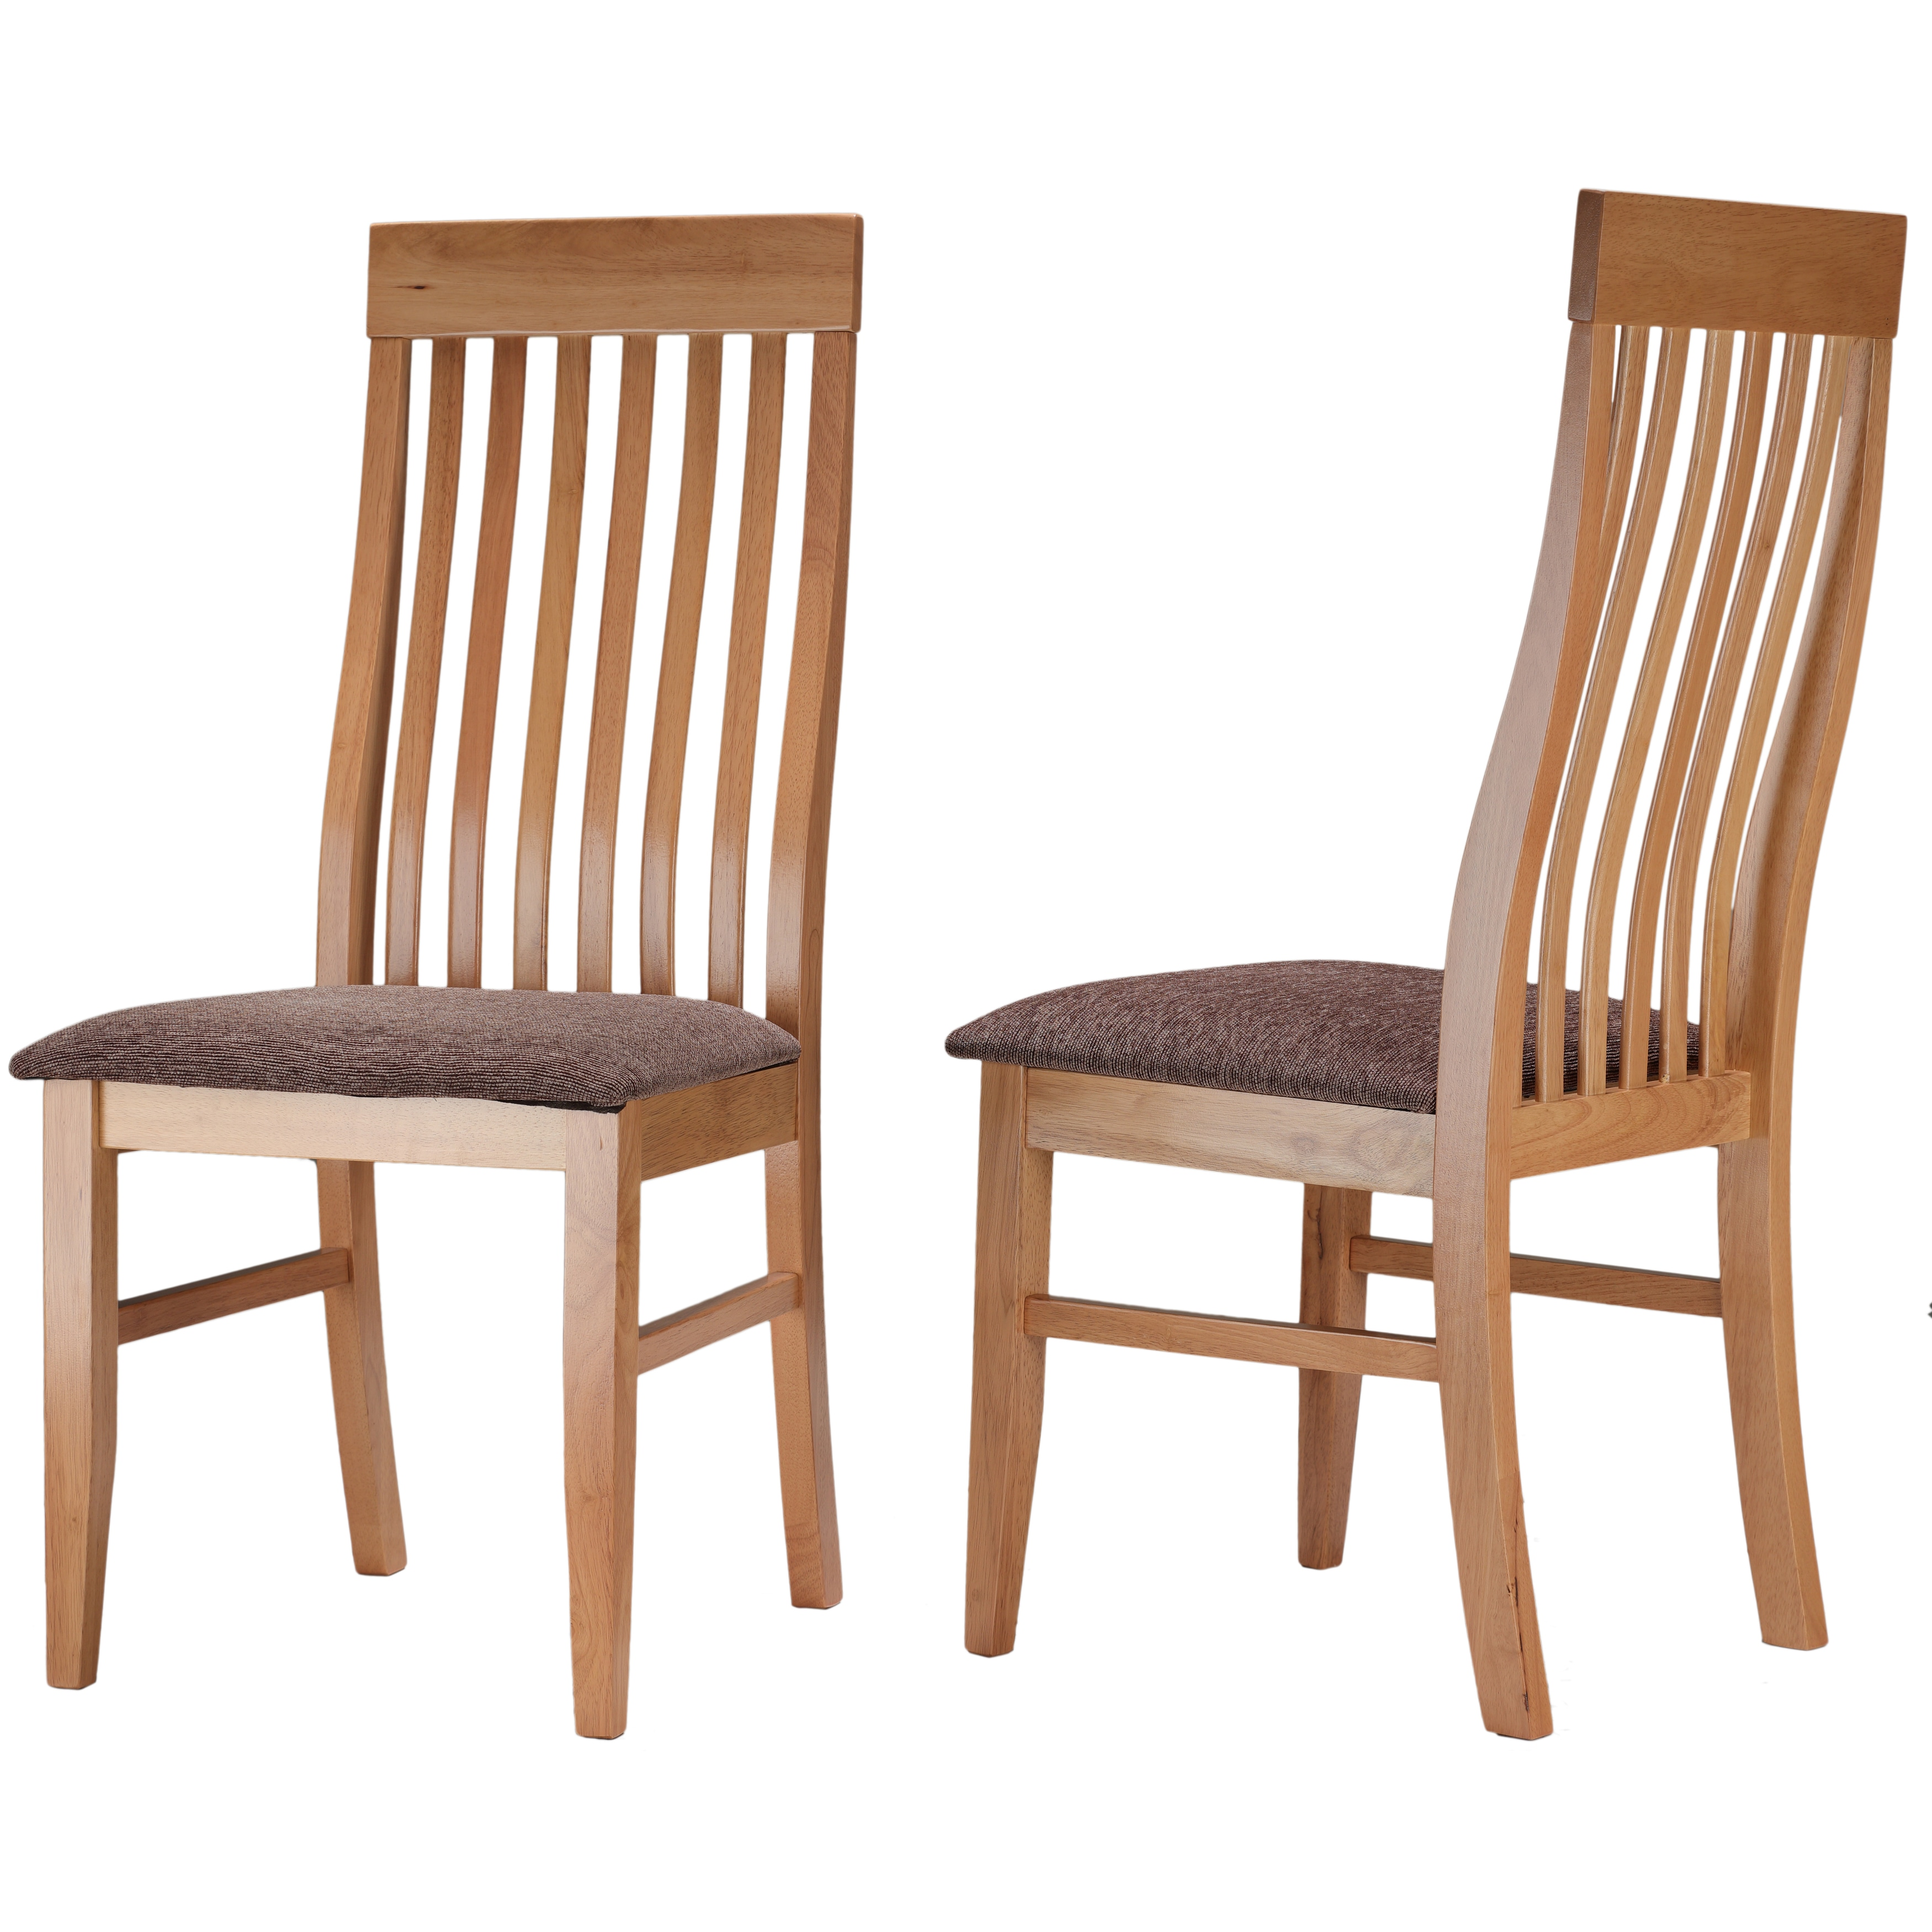 Prime Cortesi Home Como Mission Style Dining Chair In Light Maple Finish And Brown Fabric Seat Set Of 2 Oak Tan Andrewgaddart Wooden Chair Designs For Living Room Andrewgaddartcom